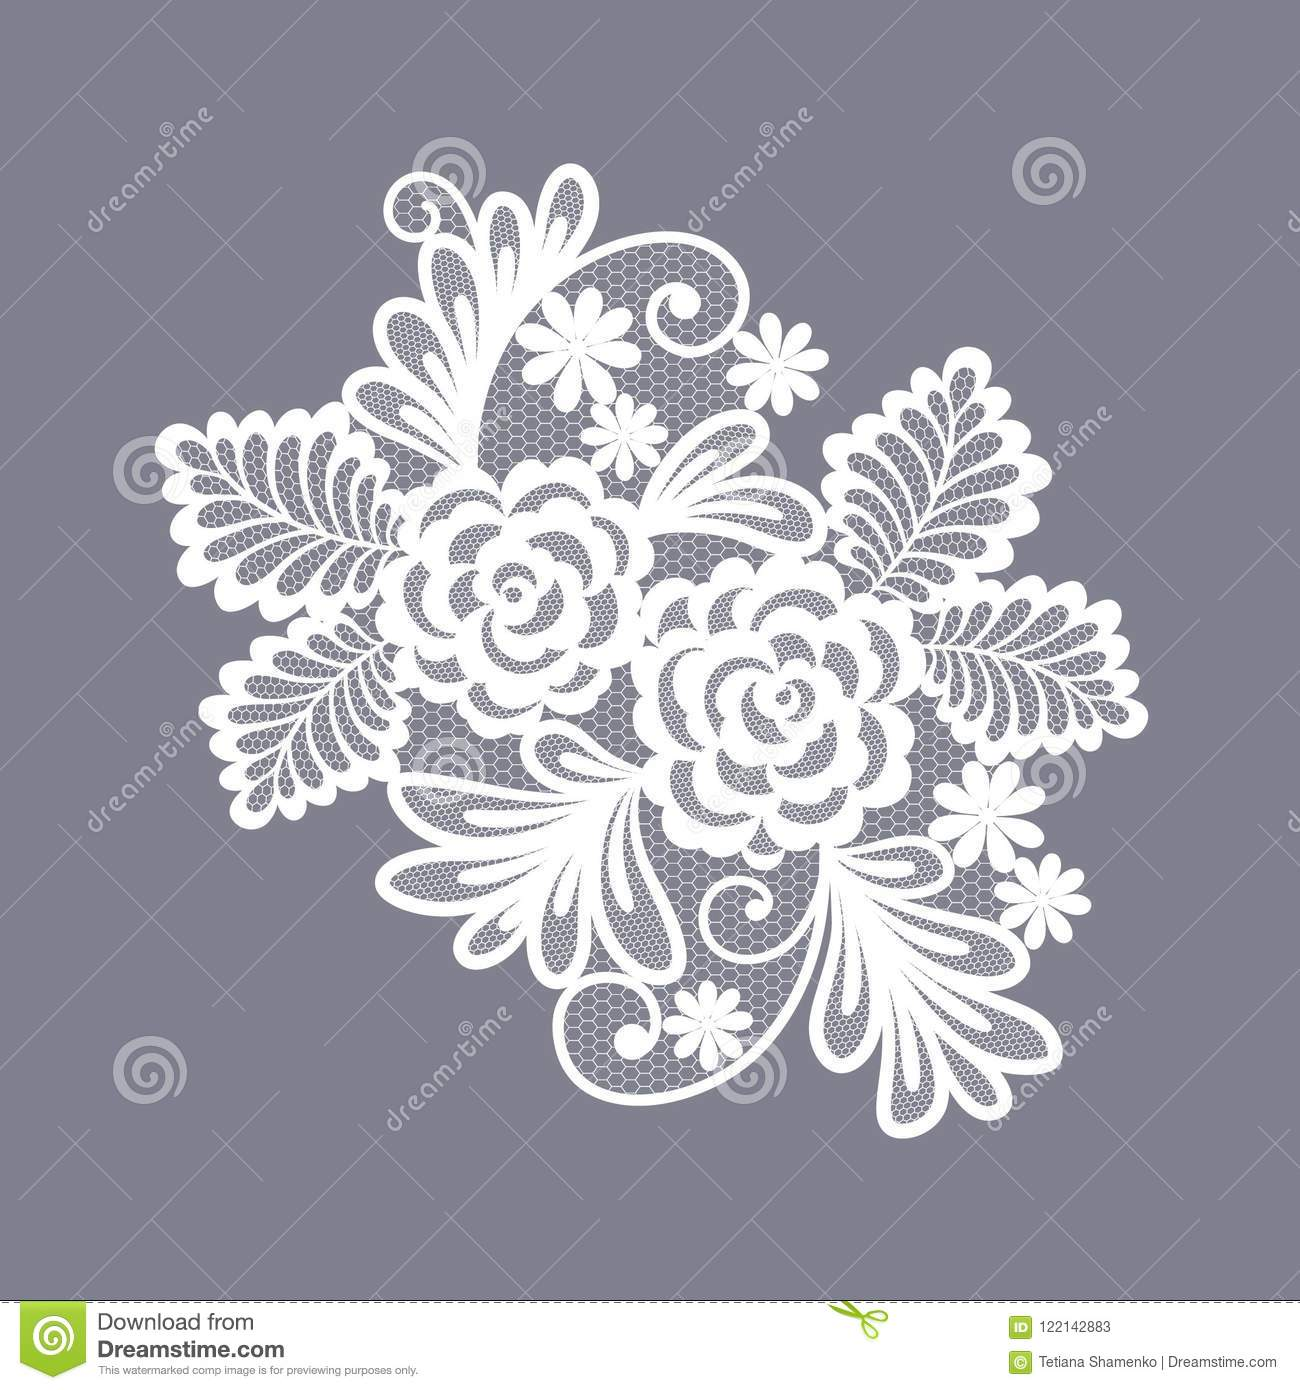 Lace Flowers Decoration Element Stock Vector Illustration Of